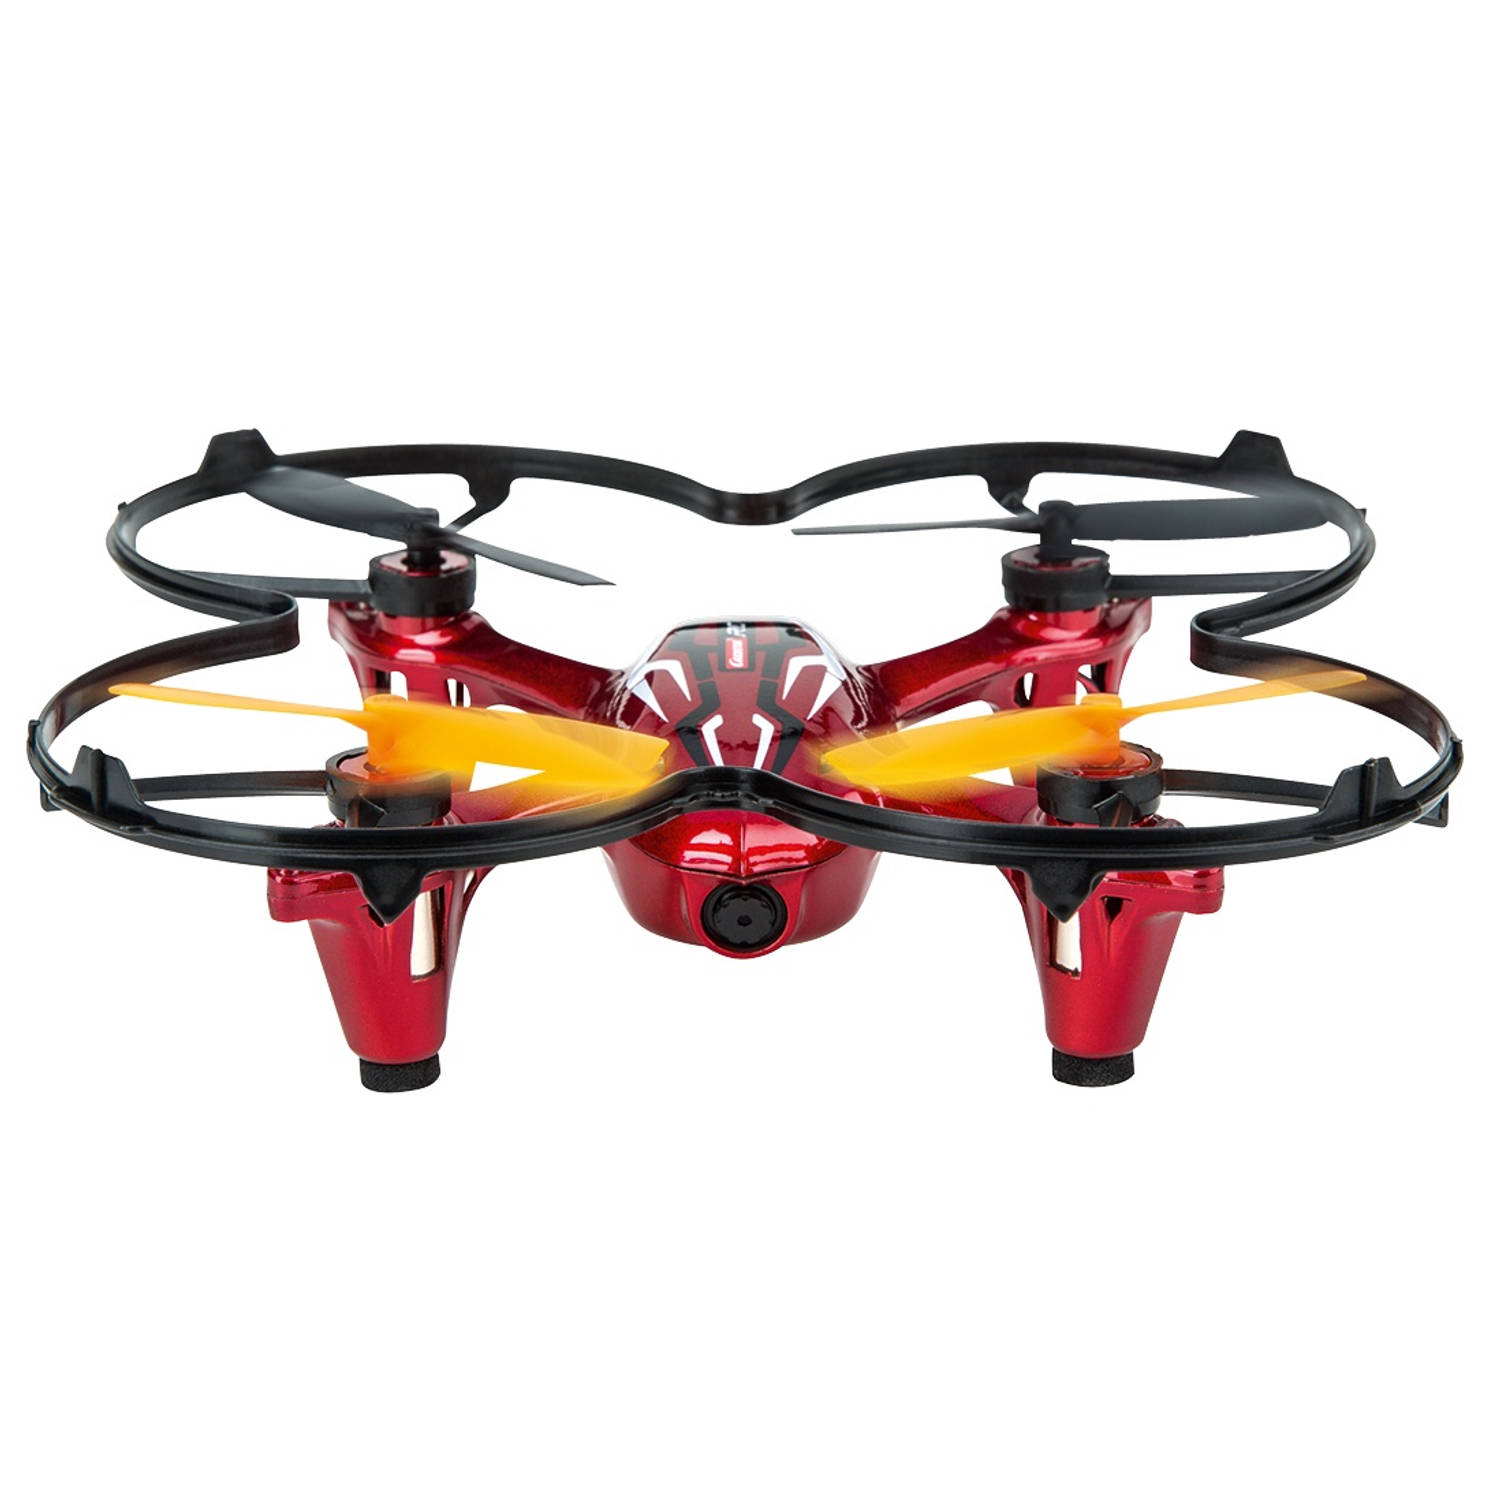 Carrera rc quadrocopter video one rood 13 cm